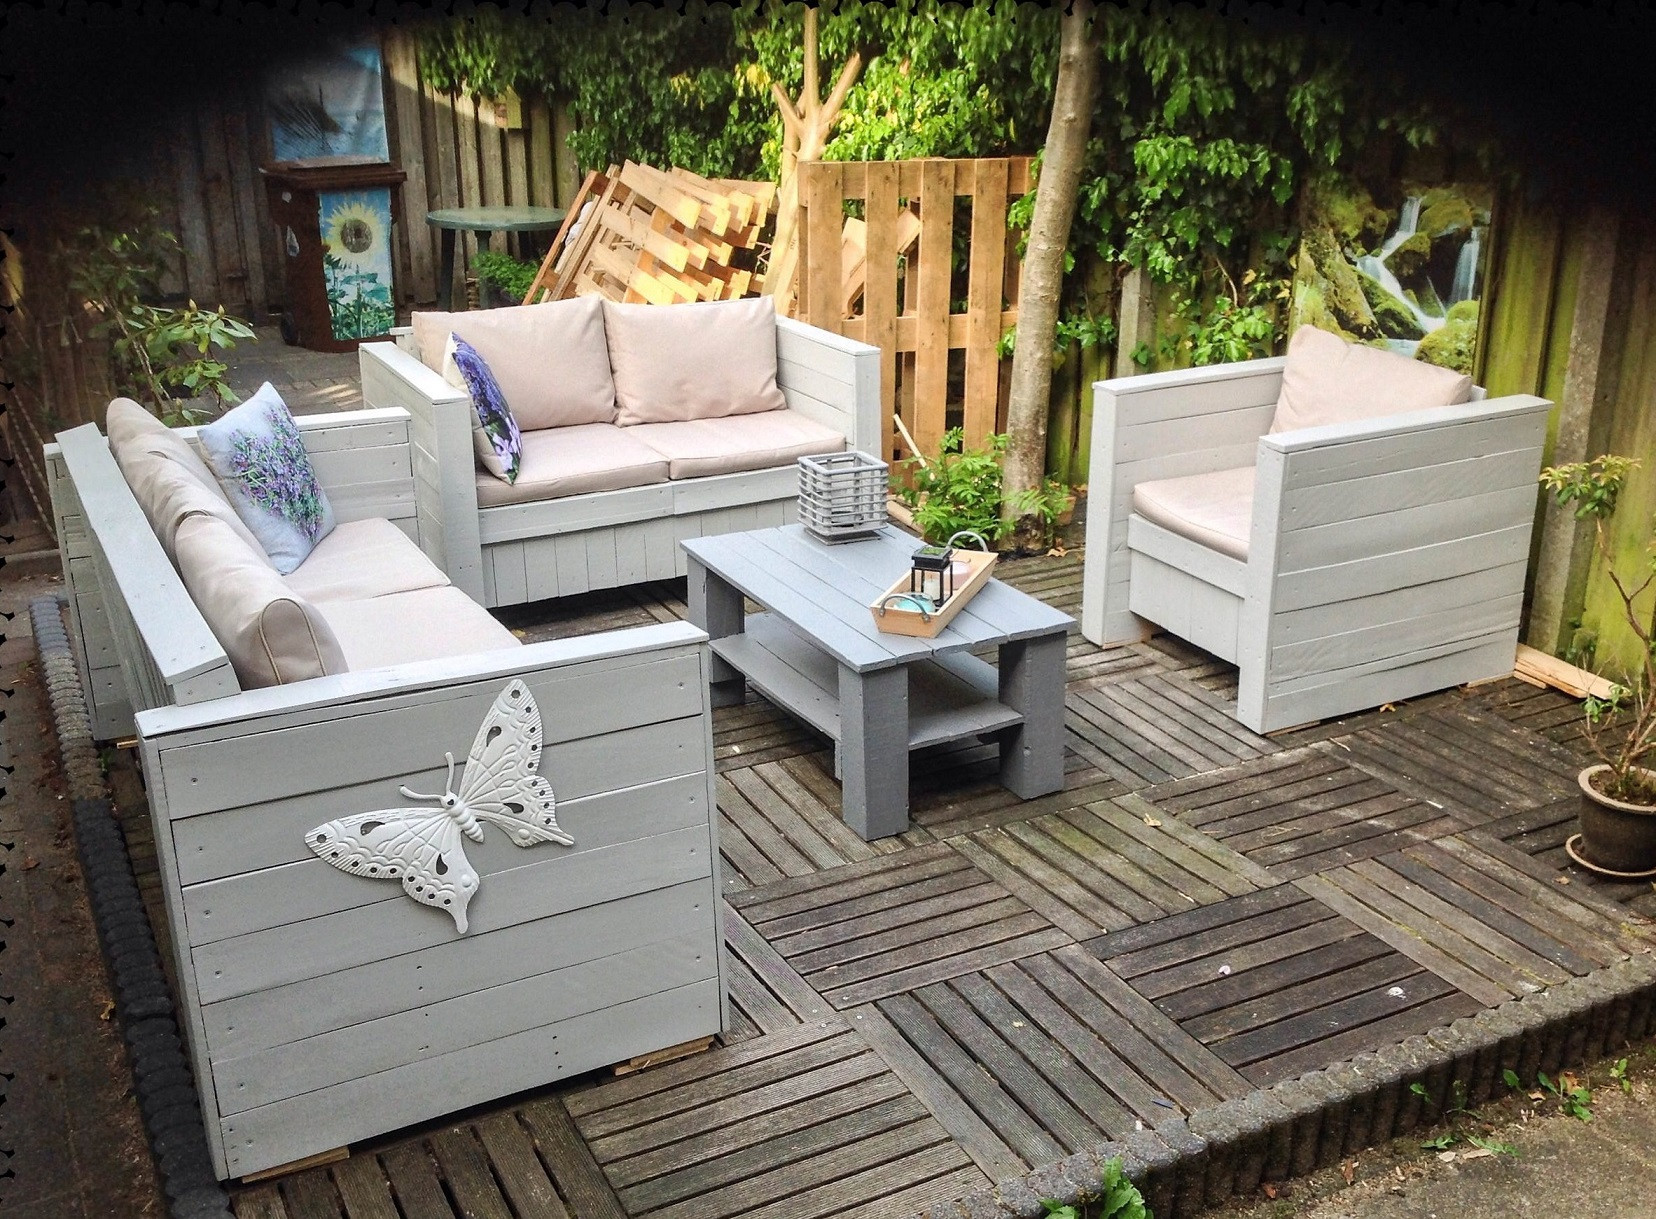 Pallet Backyard Furniture  Shipping Pallets Outdoor Furniture – Ideas with Pallets